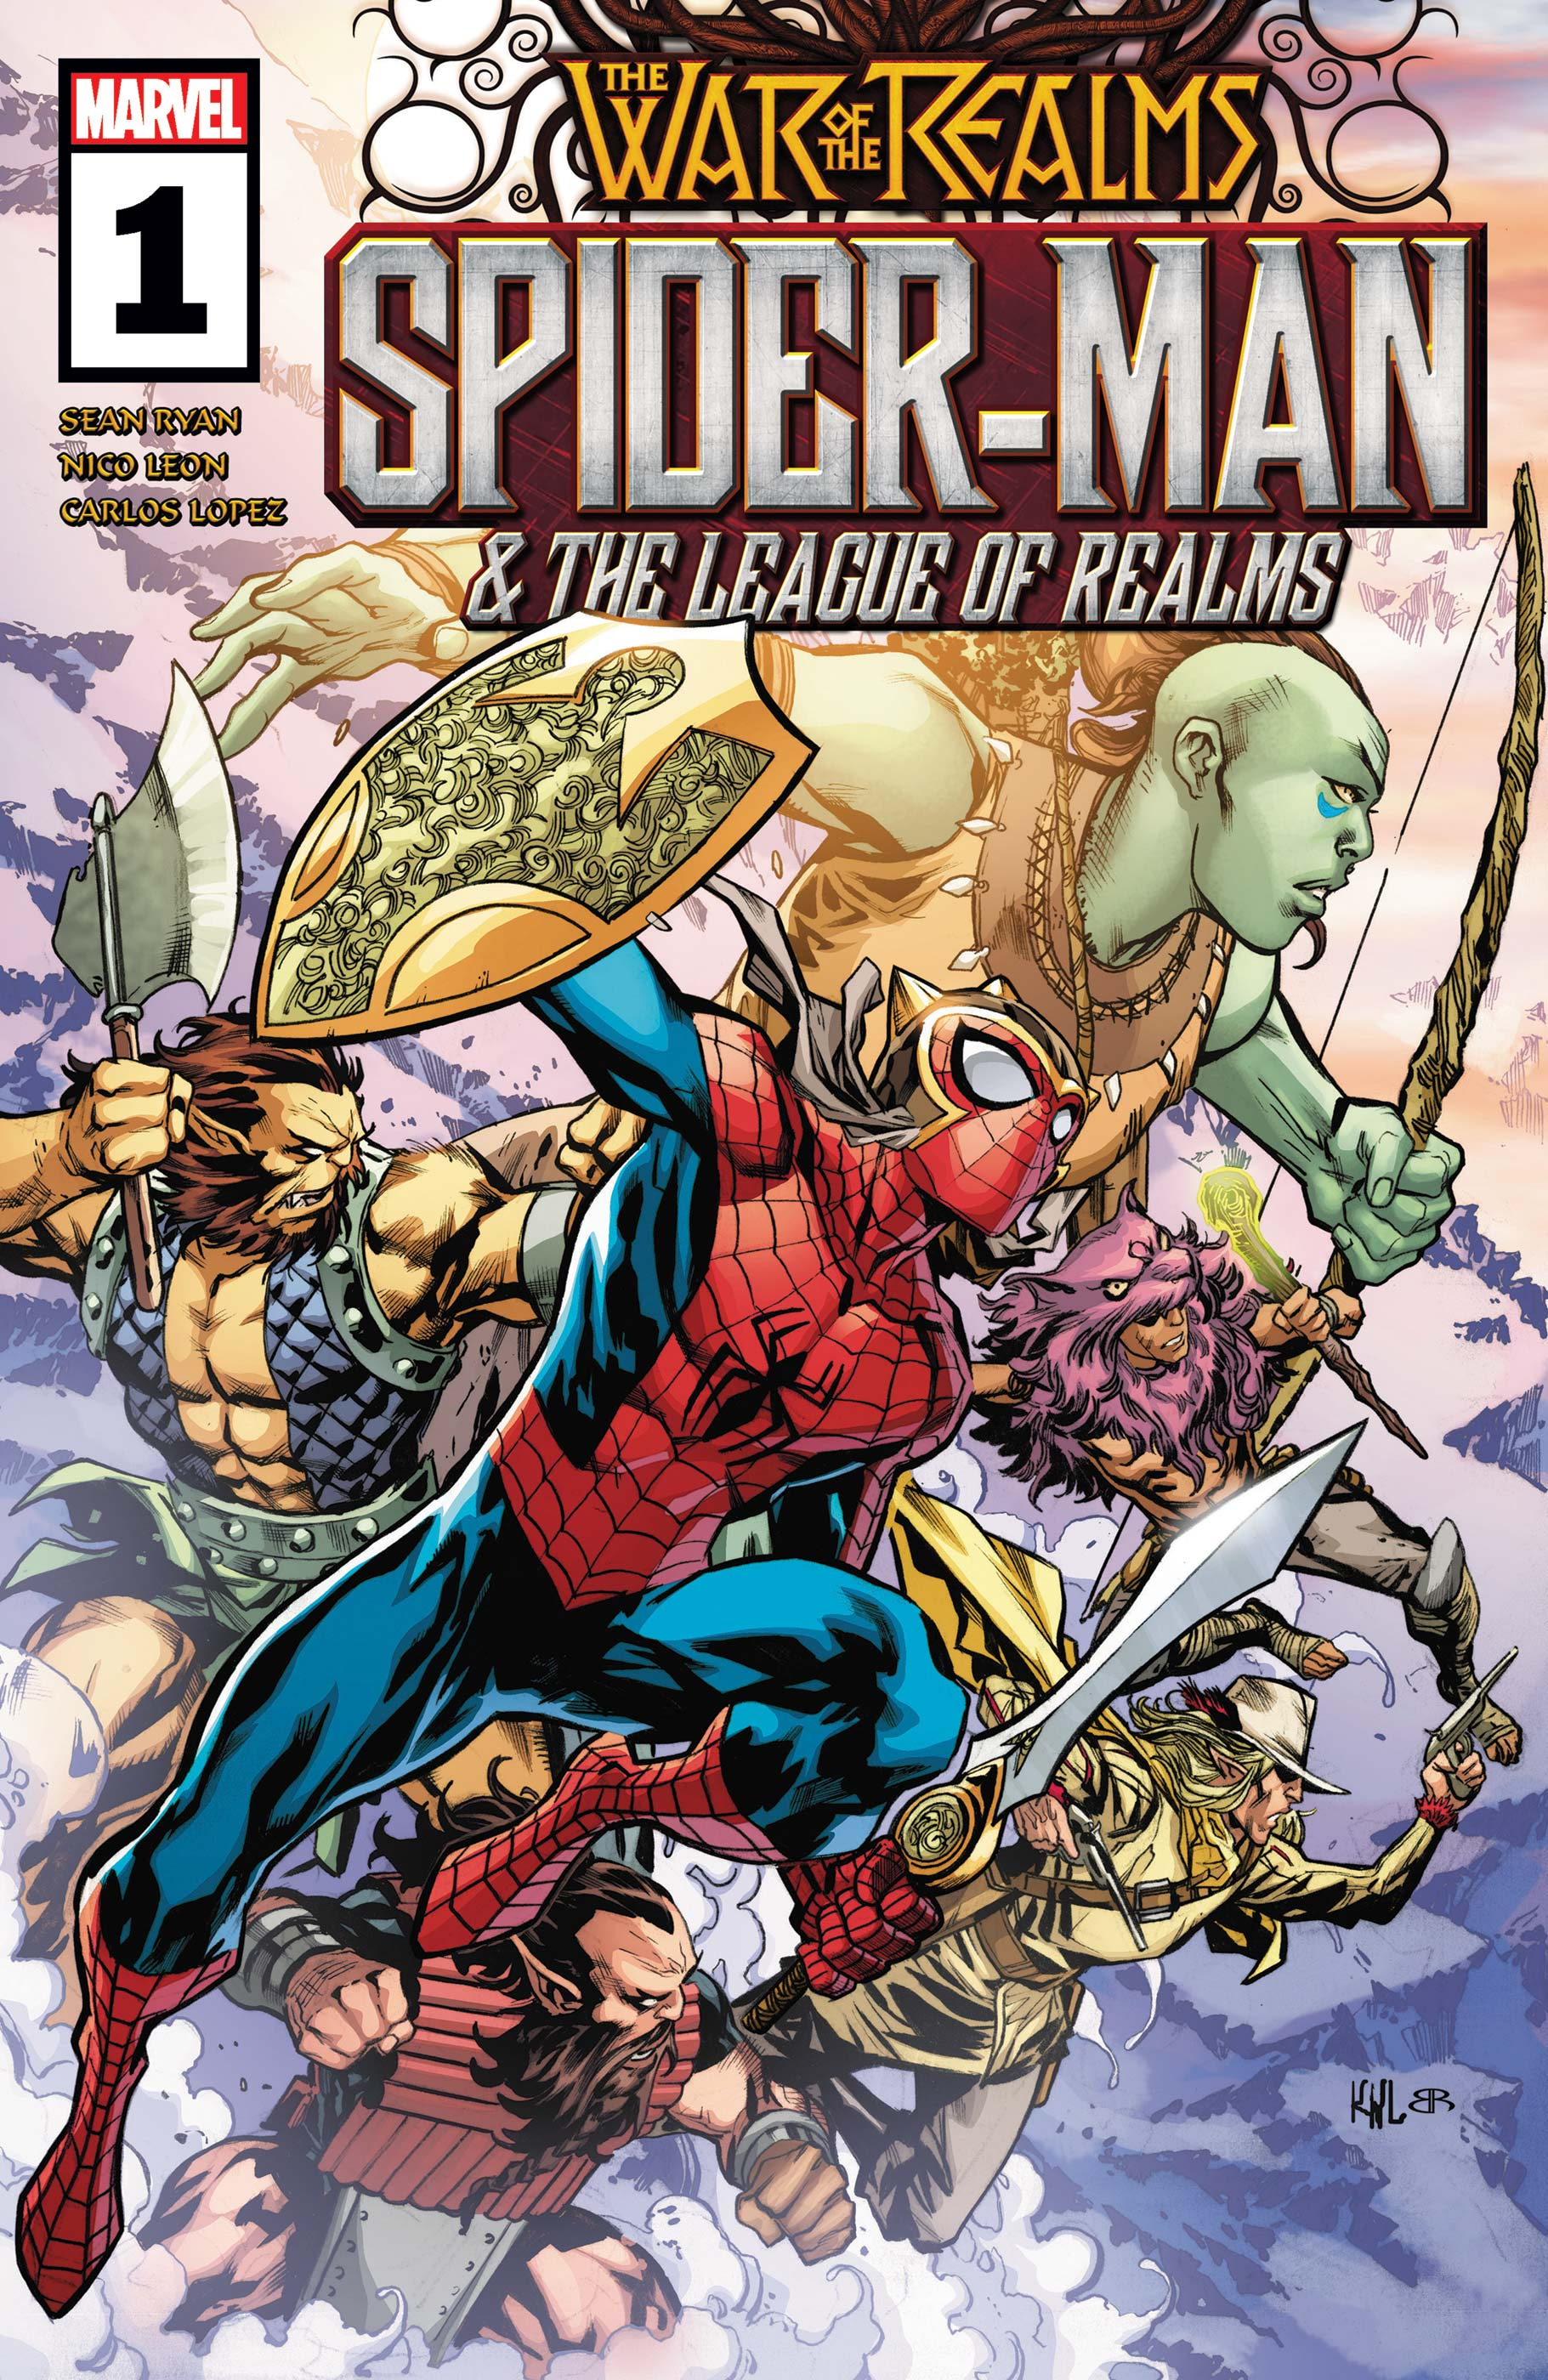 Spider-Man & the League of Realms (2019) #1